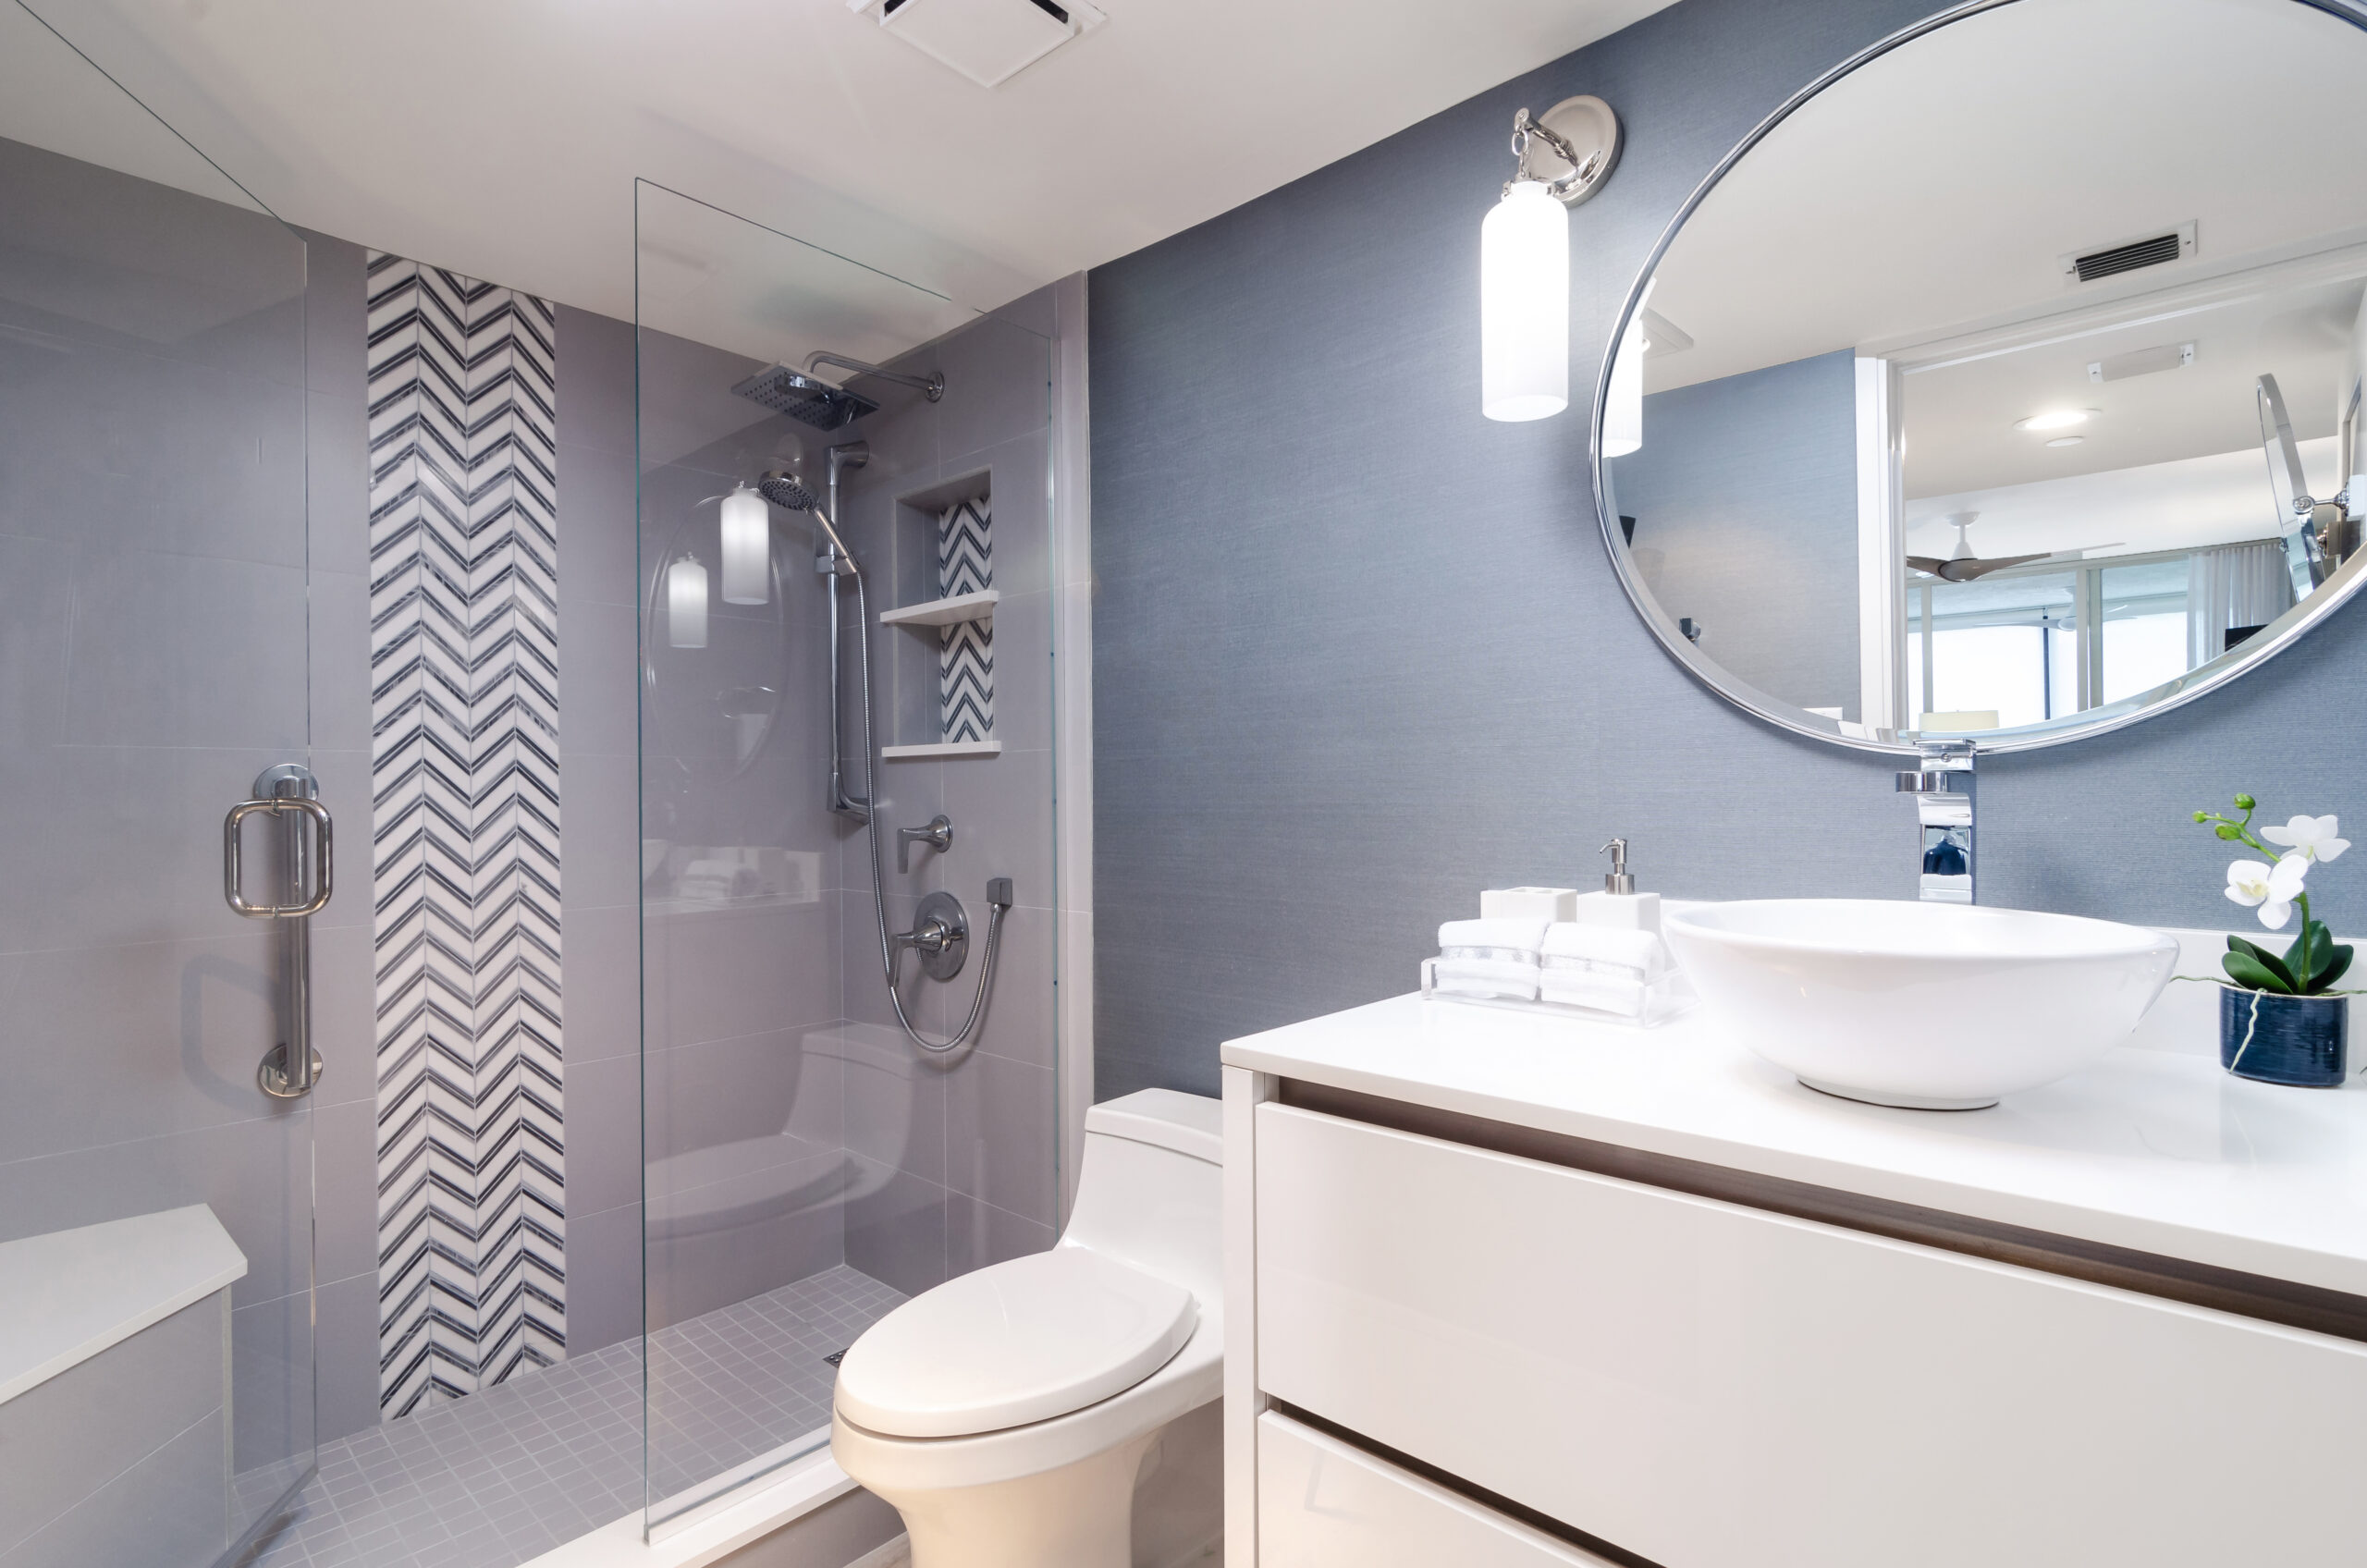 Naples Condo Remodeling with Guest Bathroom